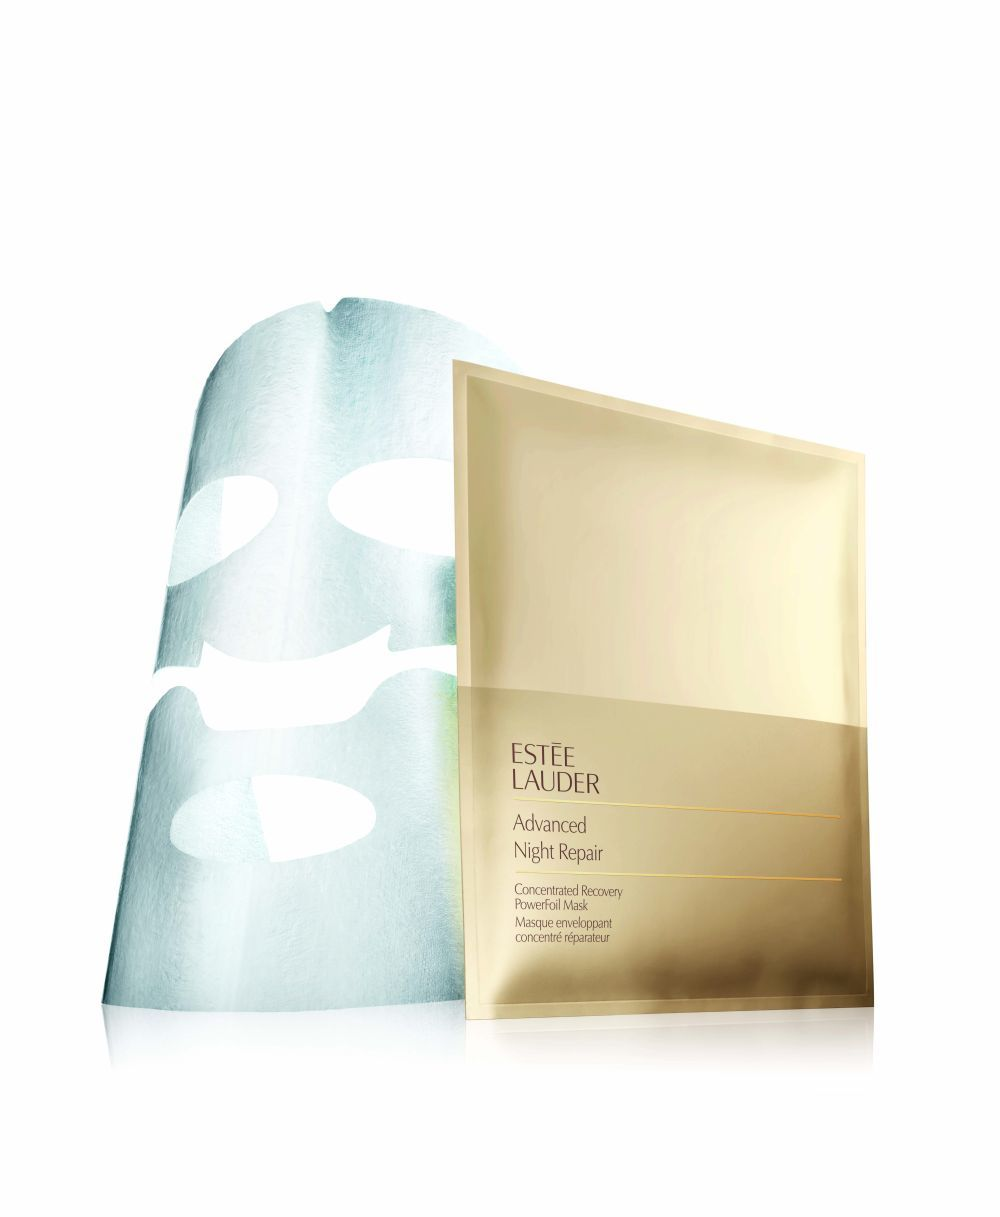 Advanced Night Repair Mask Power Foil Mask, Estée Lauder.